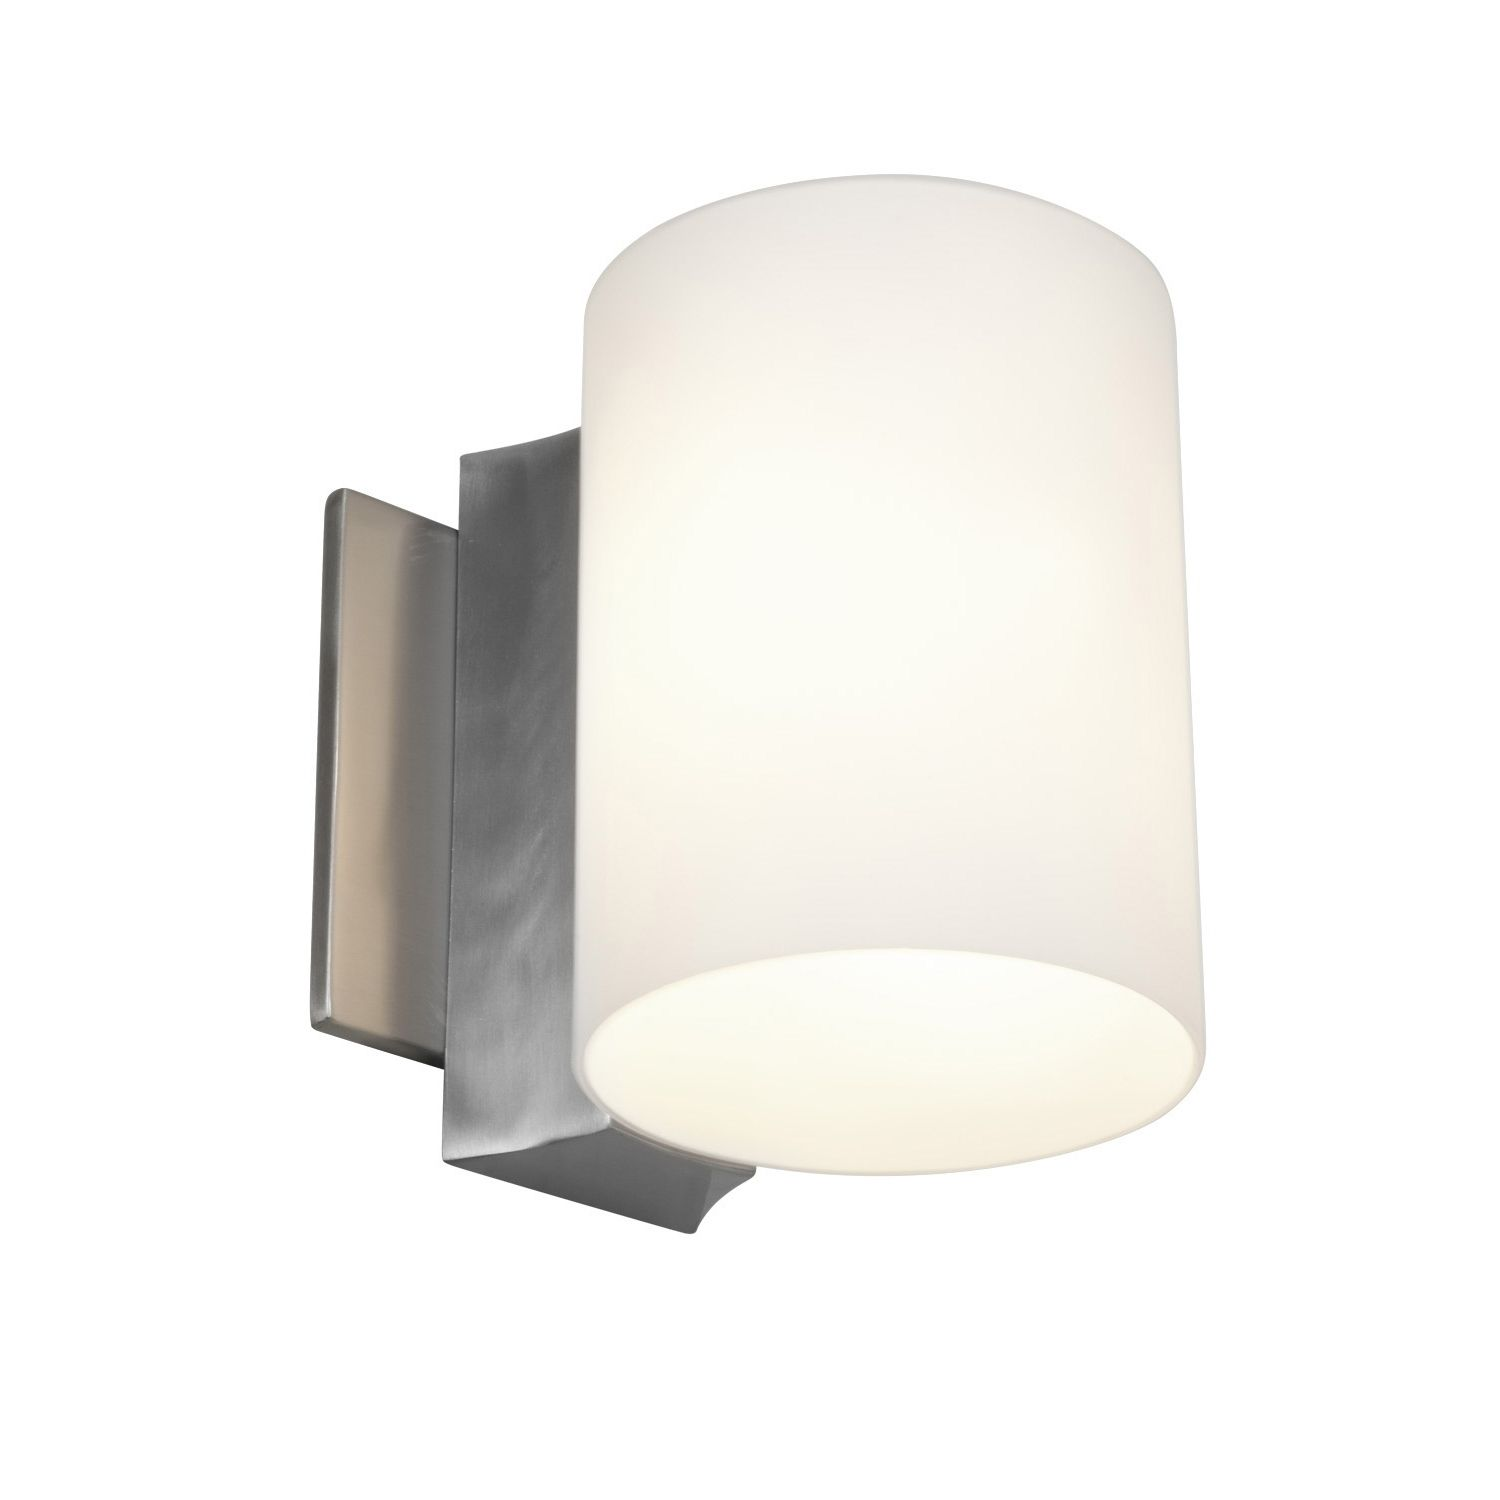 Stylize your home with this single-light wall sconce, which features an elegant brushed steel finish. This sconce features opal glass that will help evenly distribute your light, adding to the ambiance in your home. It is excellent for a hallway.